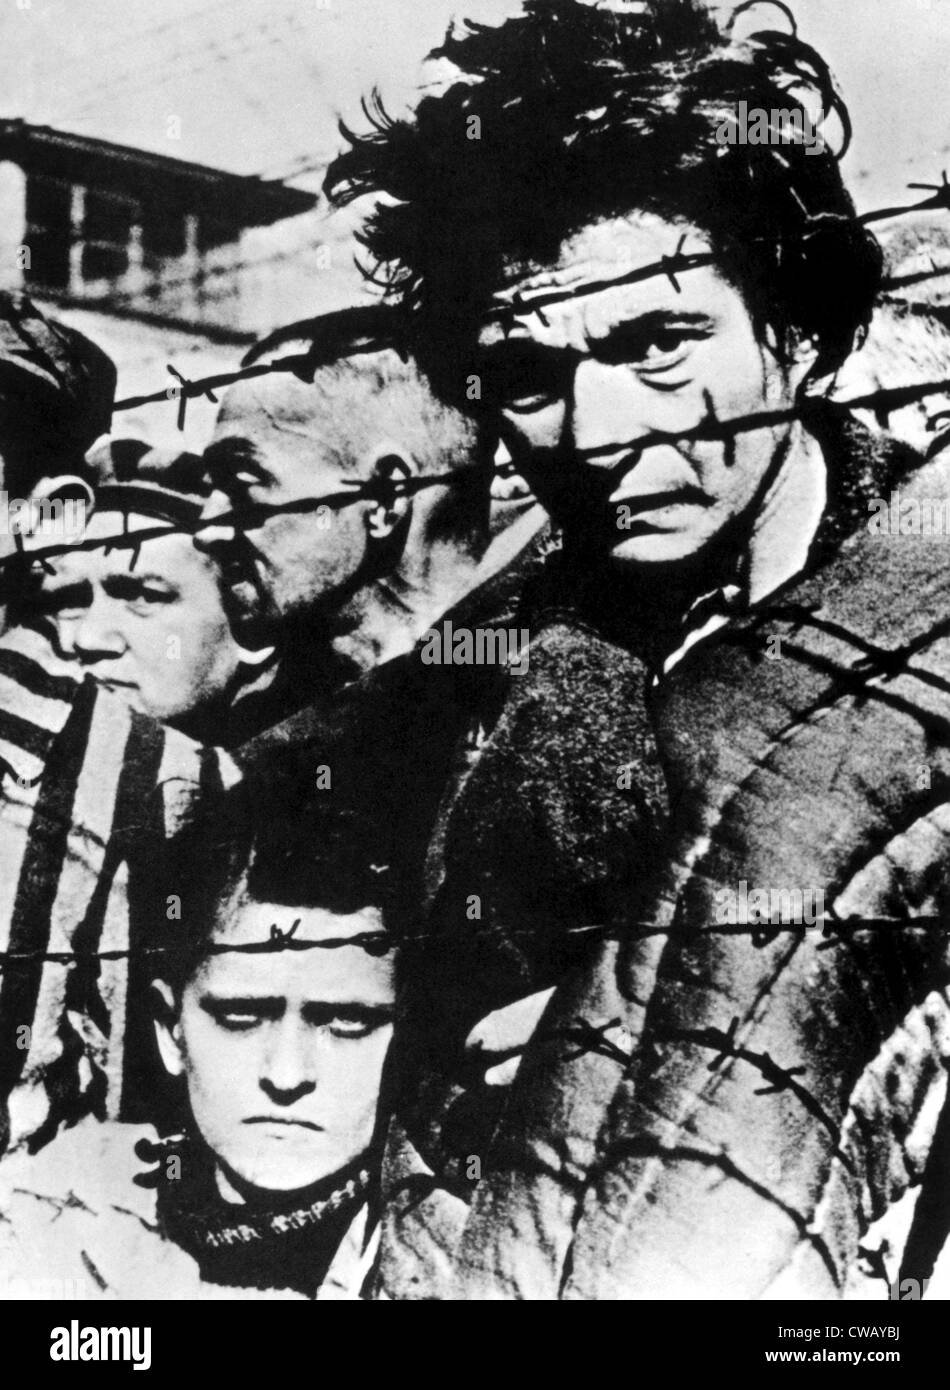 Prisoners at the Auschwitz concentration camp after their liberation by the Russian army, 1945 - Stock Image